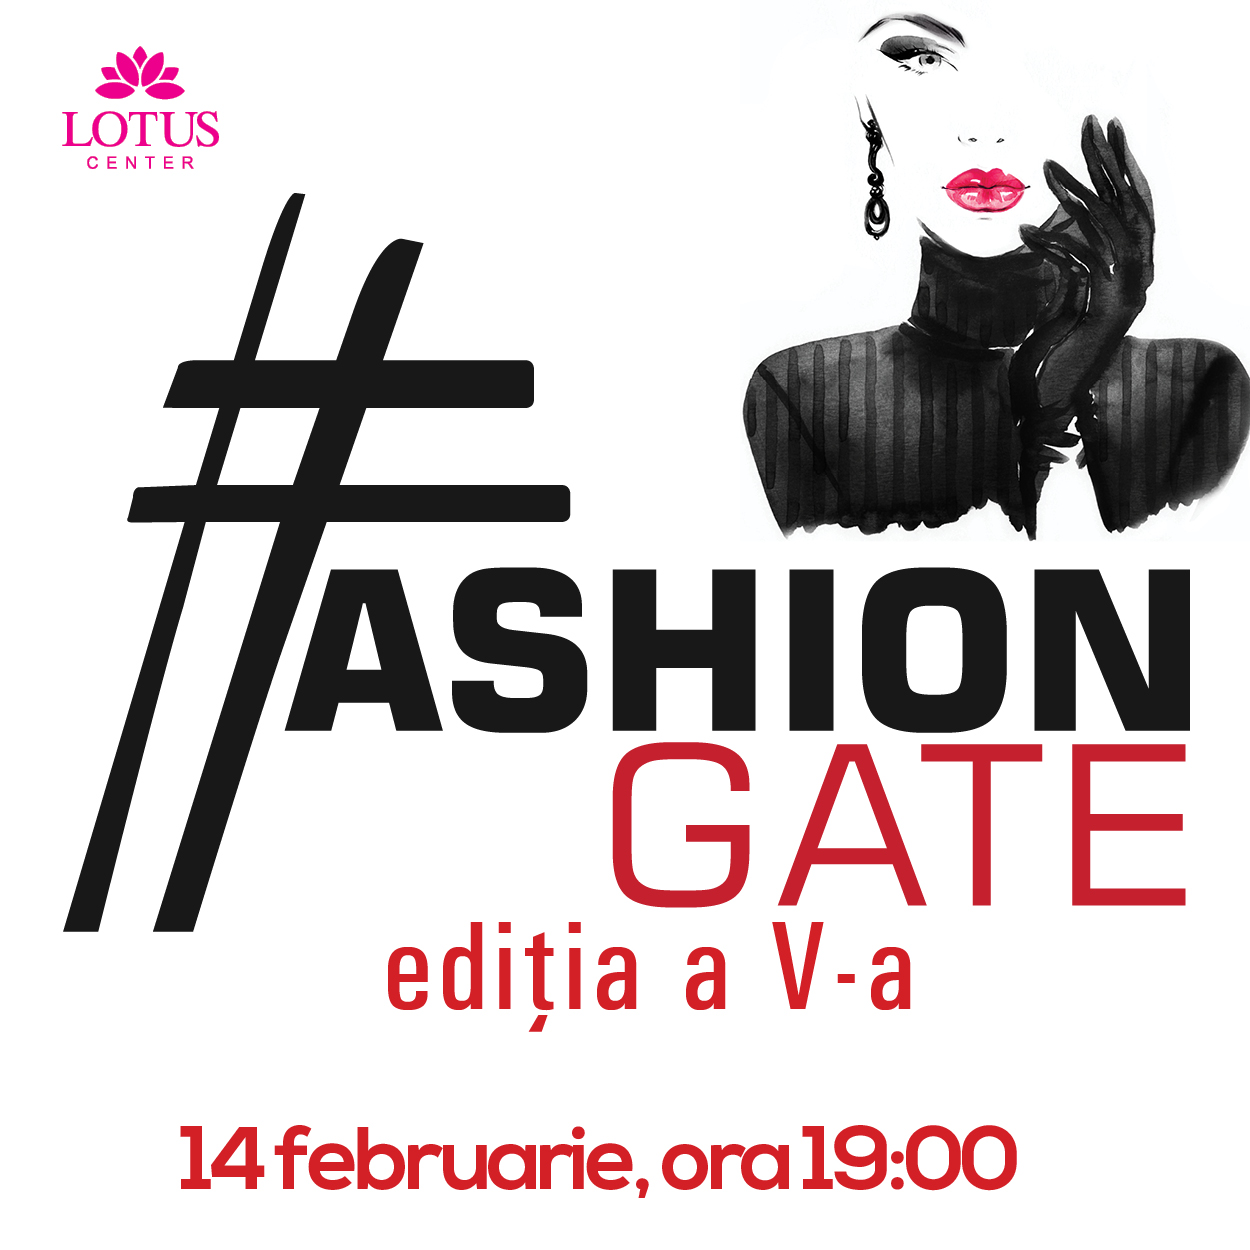 300 x 300 px Fashion gate